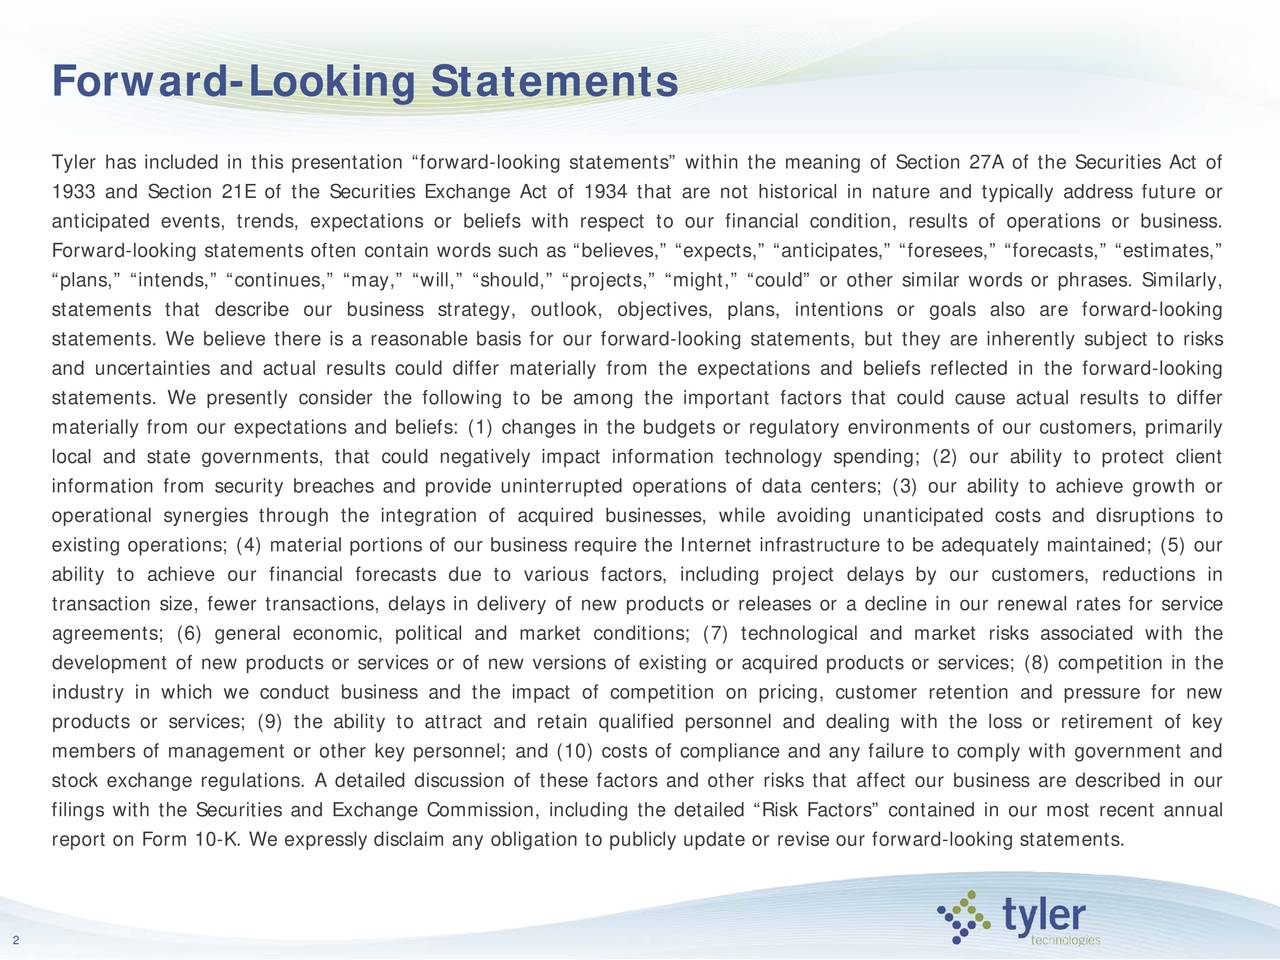 "Tyler has included in this presentation ""forward-looking statements"" within the meaning of Section 27A of the Securities Act of 1933 and Section 21E of the Securities Exchange Act of 1934 that are not historical in nature and typically address future or anticipated events, trends, expectations or beliefs with respect to our financial condition, results of operations or business. Forward-looking statements often contain words such as ""believes,"" ""expects,"" ""anticipates,"" ""foresees,"" ""forecasts,"" ""estimates,"" ""plans,"" ""intends,"" ""continues,"" ""may,"" ""will,"" ""should,"" ""projects,"" ""might,"" ""could"" or other similar words or phrases. Similarly, statements that describe our business strategy, outlook, objectives, plans, intentions or goals also are forward-looking statements. We believe there is a reasonable basis for our forward-looking statements, but they are inherently subject to risks and uncertainties and actual results could differ materially from the expectations and beliefs reflected in the forward-looking statements. We presently consider the following to be among the important factors that could cause actual results to differ materially from our expectations and beliefs: (1) changes in the budgets or regulatory environments of our customers, primarily local and state governments, that could negatively impact information technology spending; (2) our ability to protect client information from security breaches and provide uninterrupted operations of data centers; (3) our ability to achieve growth or operational synergies through the integration of acquired businesses, while avoiding unanticipated costs and disruptions to existing operations; (4) material portions of our business require the Internet infrastructure to be adequately maintained; (5) our ability to achieve our financial forecasts due to various factors, including project delays by our customers, reductions in transaction size, fewer transactions, delays in delivery of new products or releases or a decline in our renewal rates for service agreements; (6) general economic, political and market conditions; (7) technological and market risks associated with the development of new products or services or of new versions of existing or acquired products or services; (8) competition in the industry in which we conduct business and the impact of competition on pricing, customer retention and pressure for new products or services; (9) the ability to attract and retain qualified personnel and dealing with the loss or retirementof key members of management or other key personnel; and (10) costs of compliance and any failure to comply with government and stock exchange regulations. A detailed discussion of these factors and other risks that affect our business are described in our filings with the Securities and Exchange Commission, including the detailed ""Risk Factors"" contained in our most recent annual report on Form 10-K. We expressly disclaim any obligation to publicly update or revise our forward-looking statements. 2"